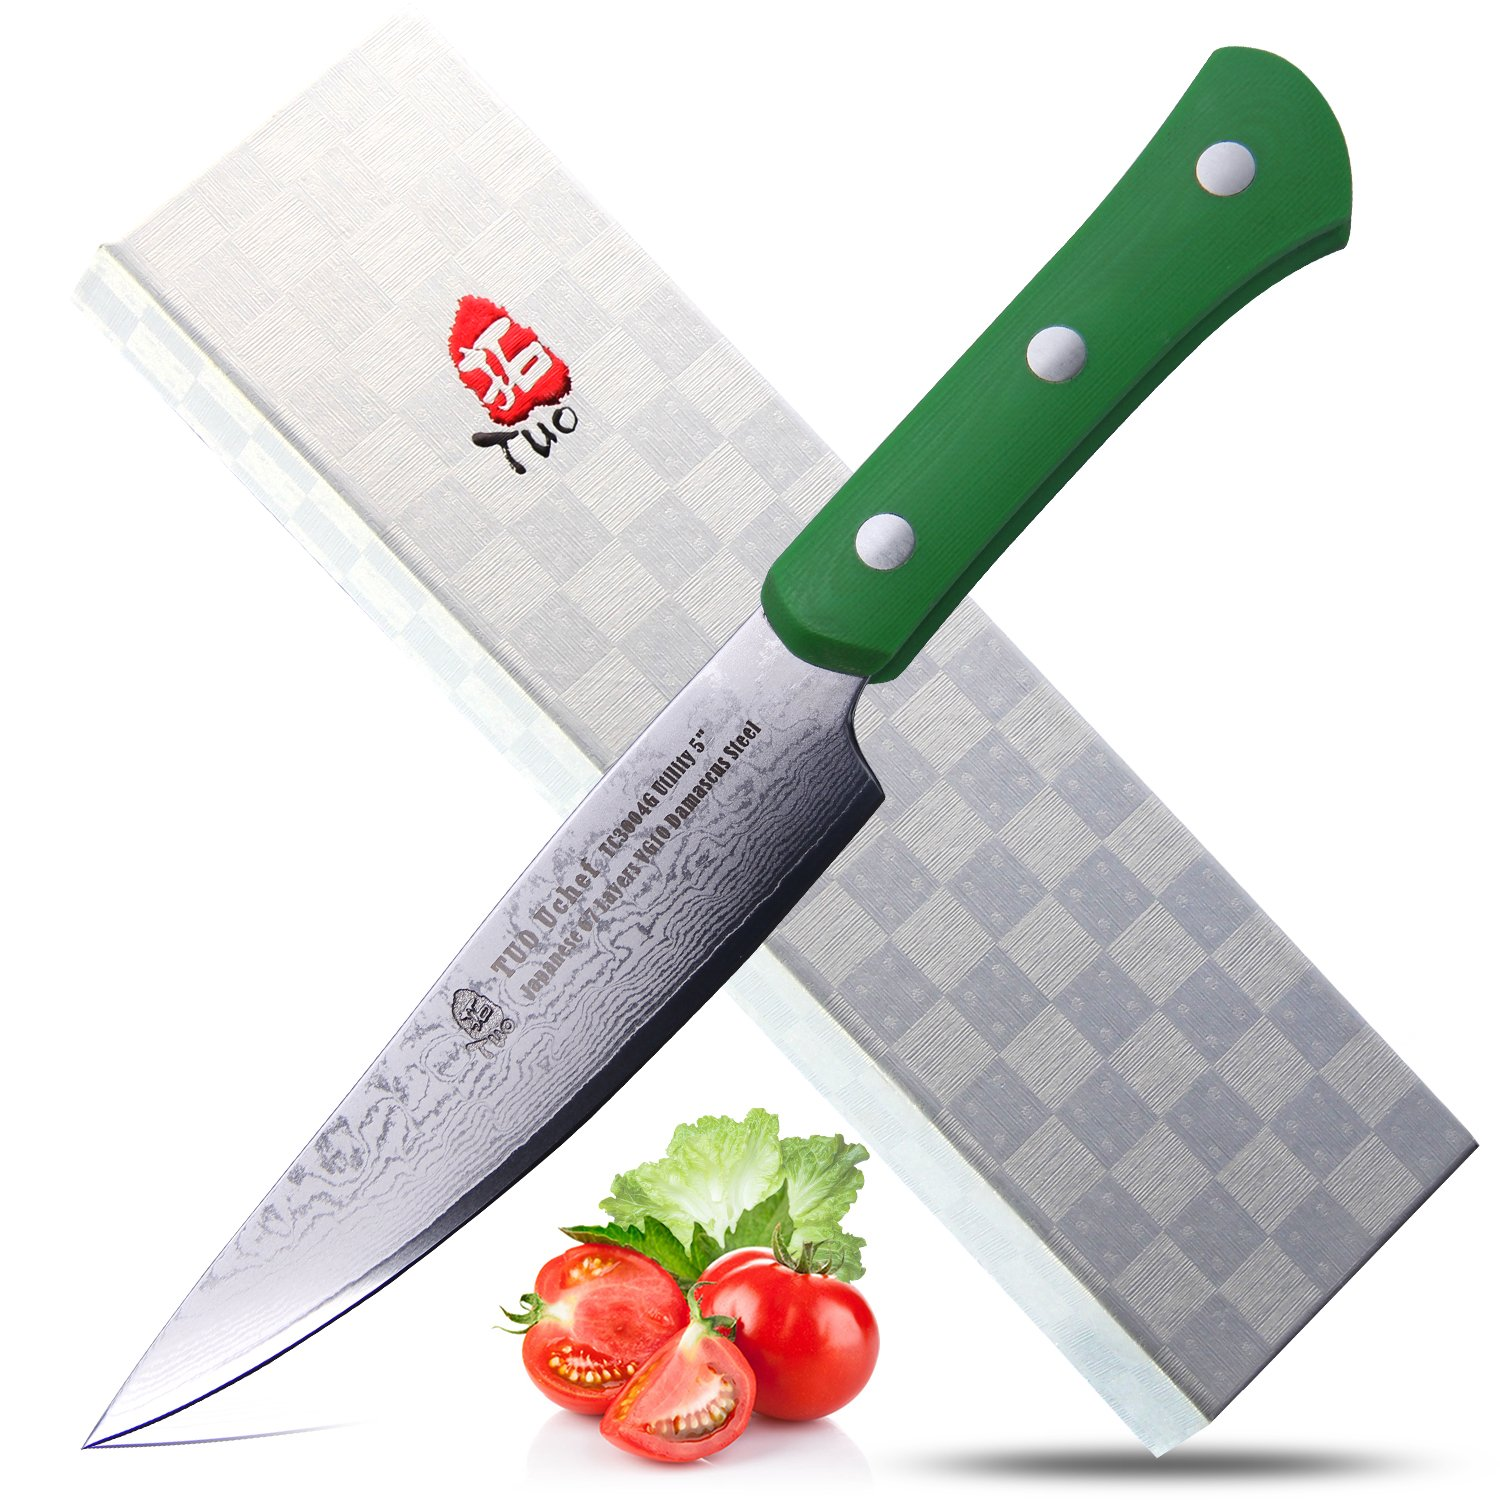 TUO Cutlery Damascus Utility Knife 5'' Green Handle - Uchef Series Multi Color - Japanese 67 Layers VG-10 Damascus Steel